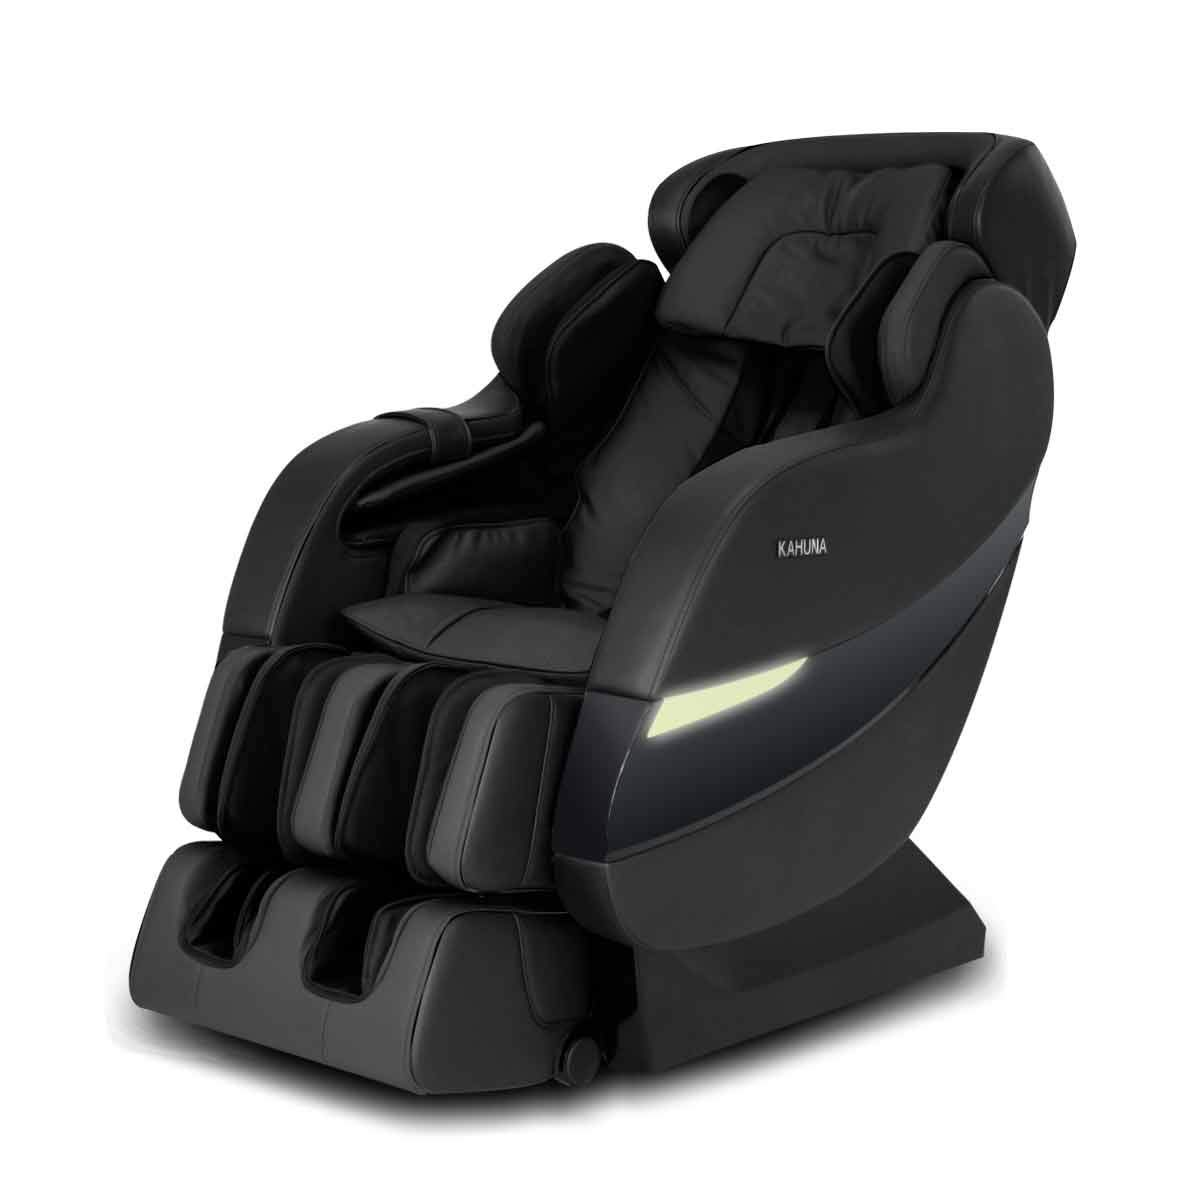 Top Performance Kahuna Superior Massage Chair with SL-Track 6 Rollers - SM-7300S (Black)